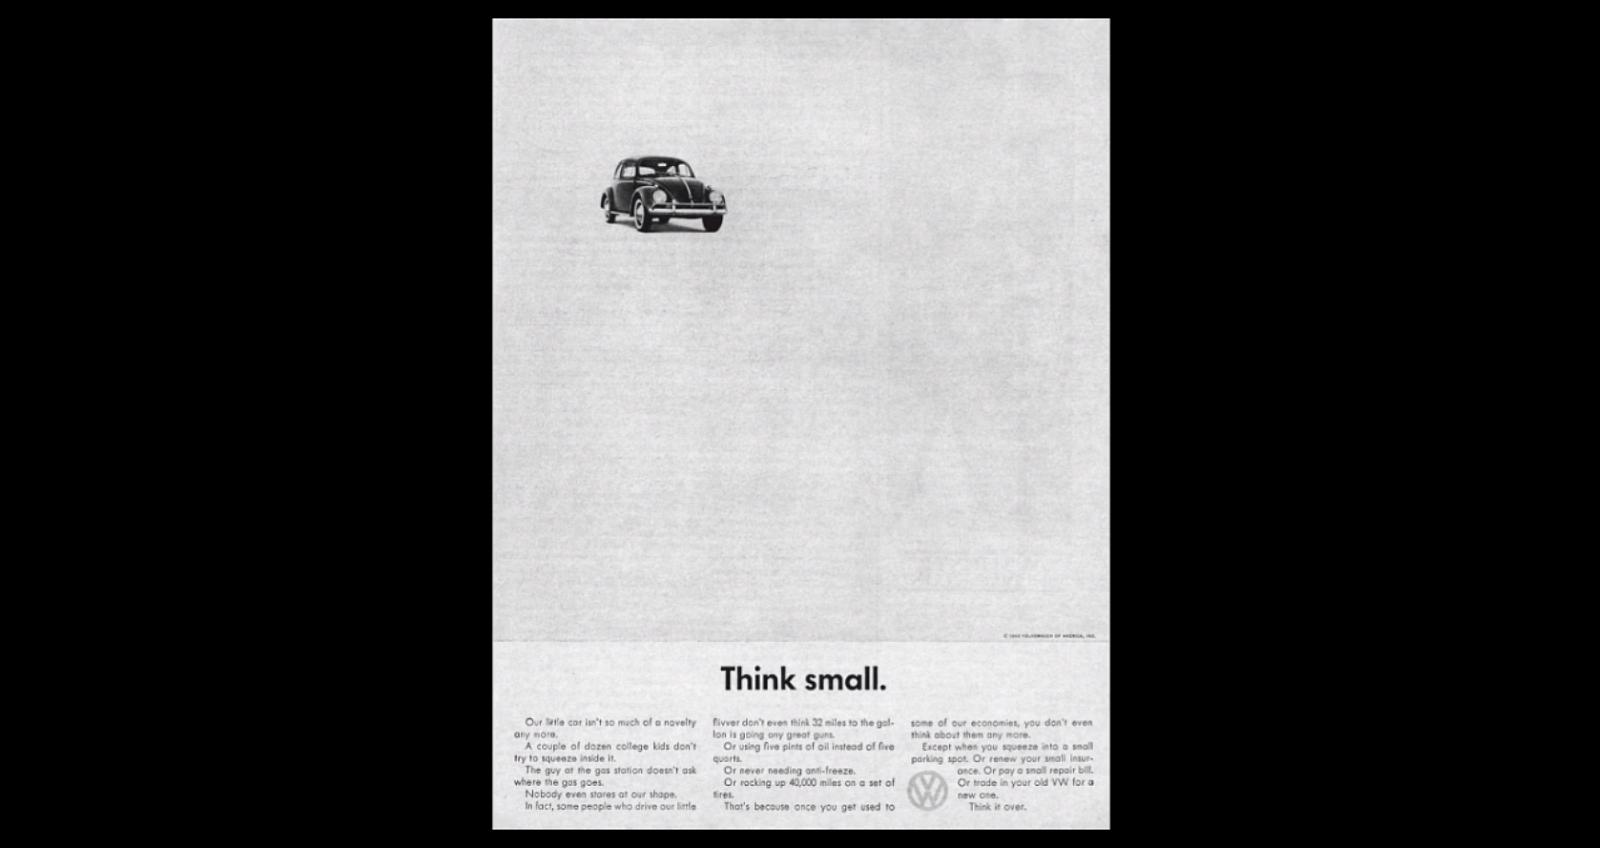 VW think small ads (5)